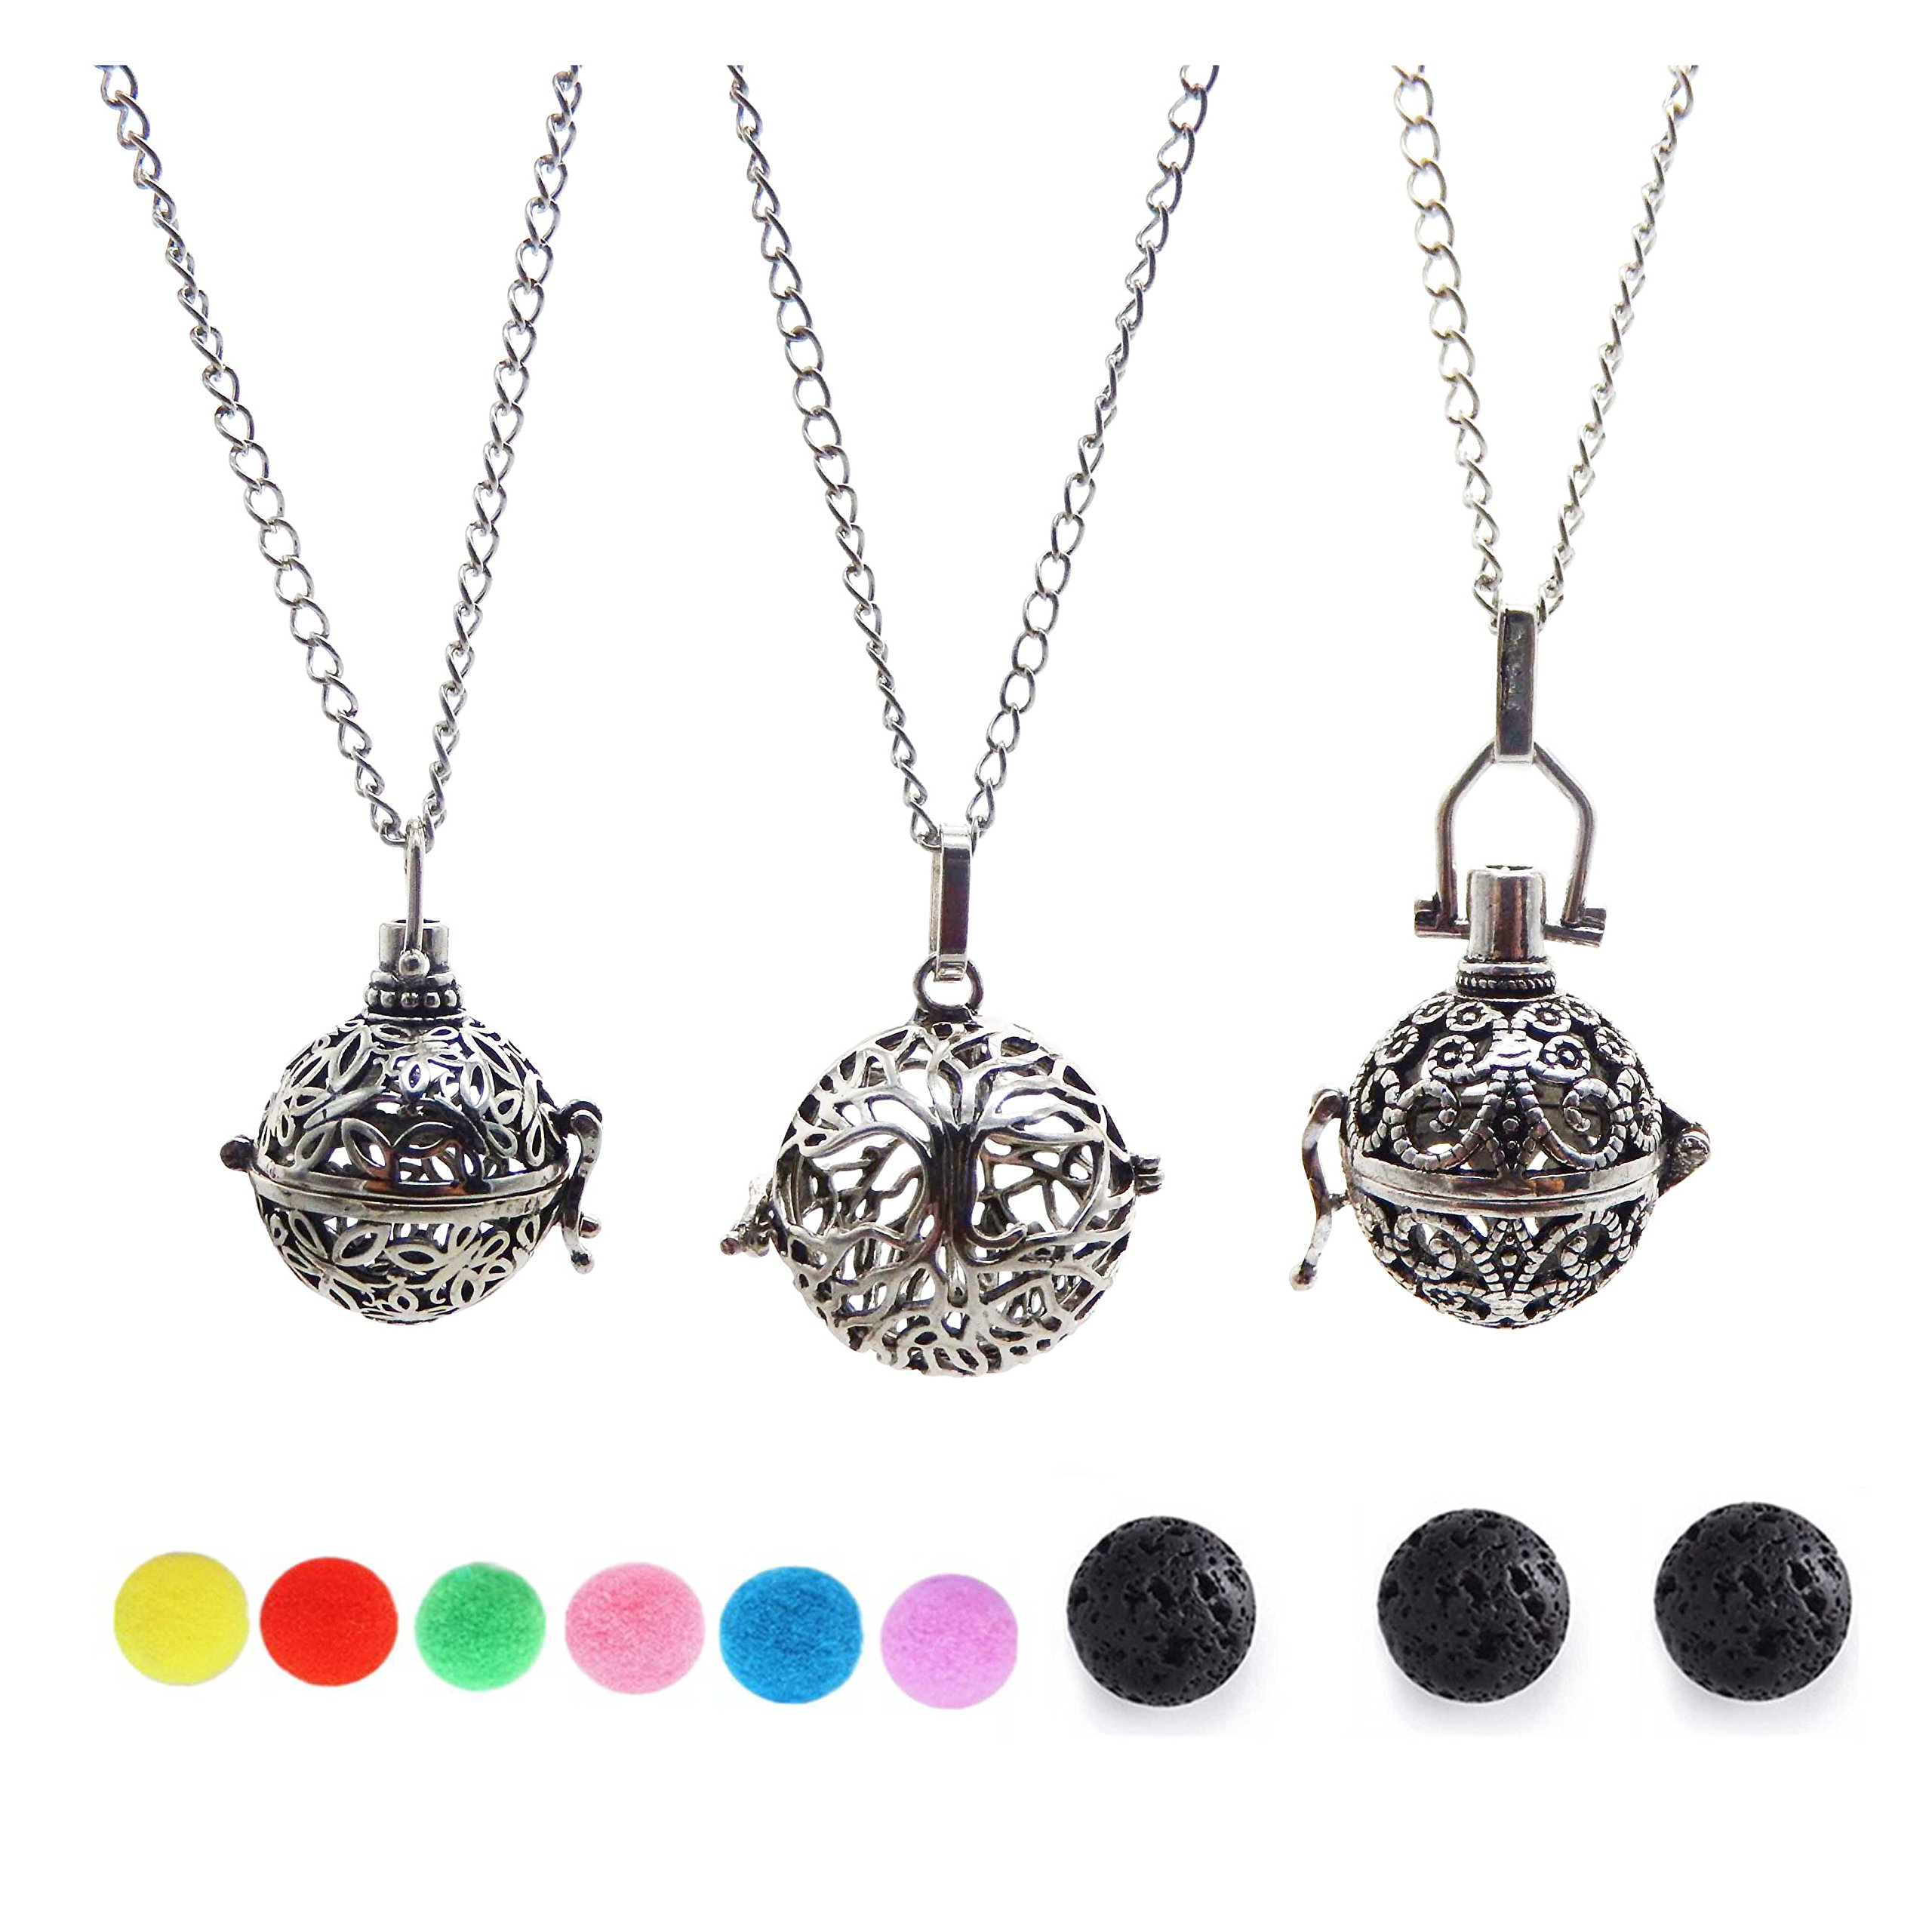 Julie Wang 3PCS Vintage Silver Essential Oil Diffuser Necklace Aromatherapy Pendant Perfume Jewelry Tree/Wave/Butterfly Cage with Lava Beads